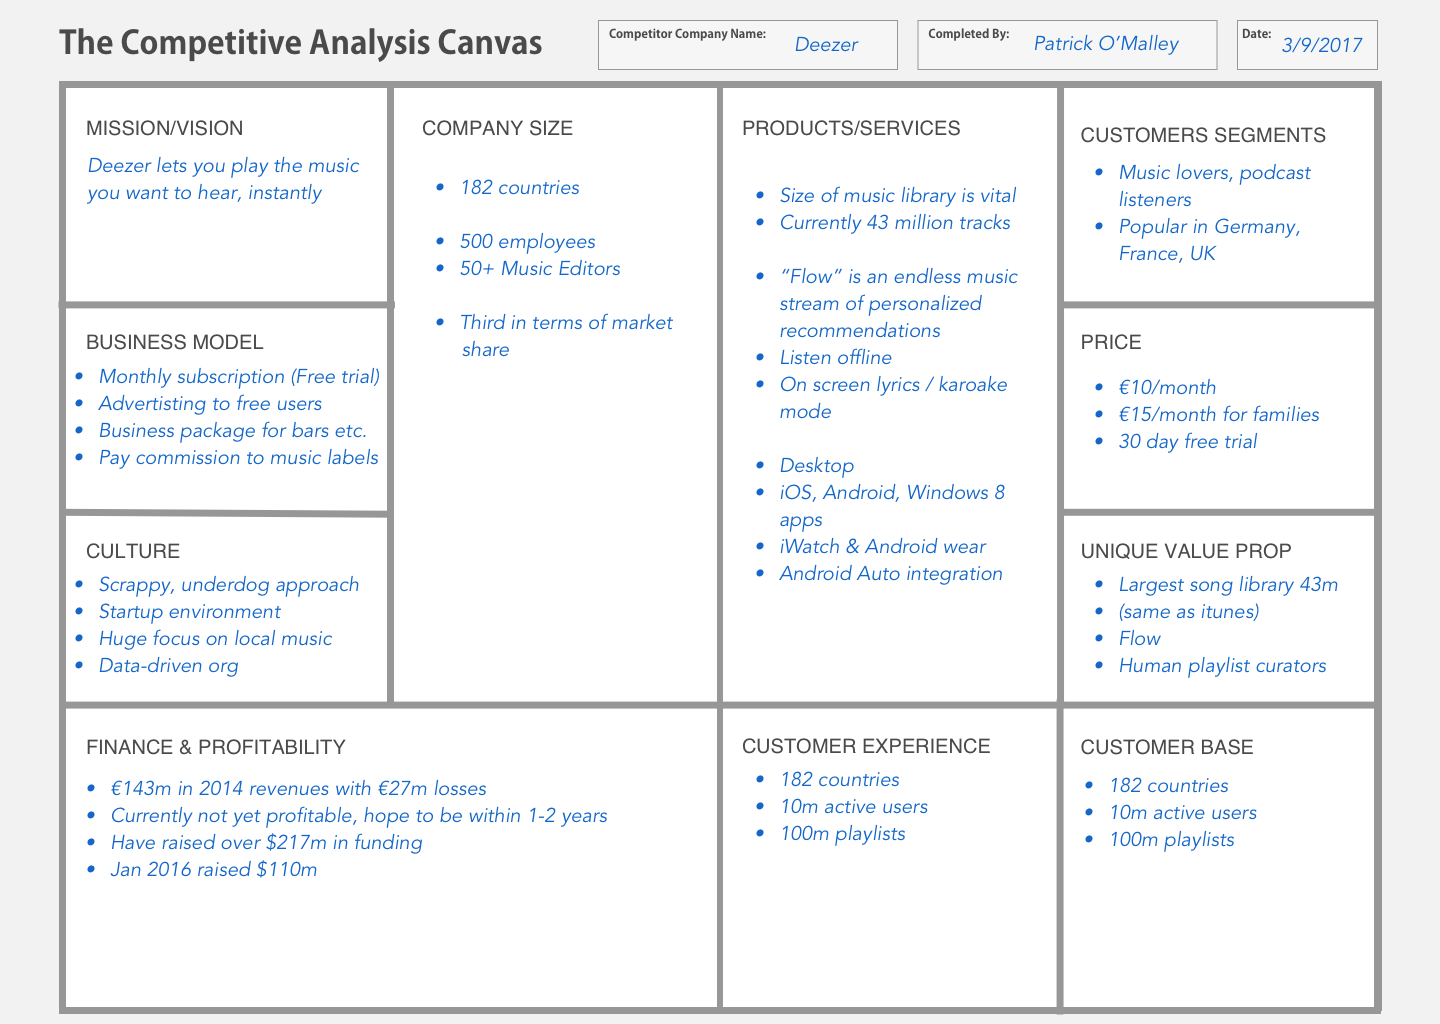 Competitive Analysis Canvas For Deezer  Competitive Analysis Example